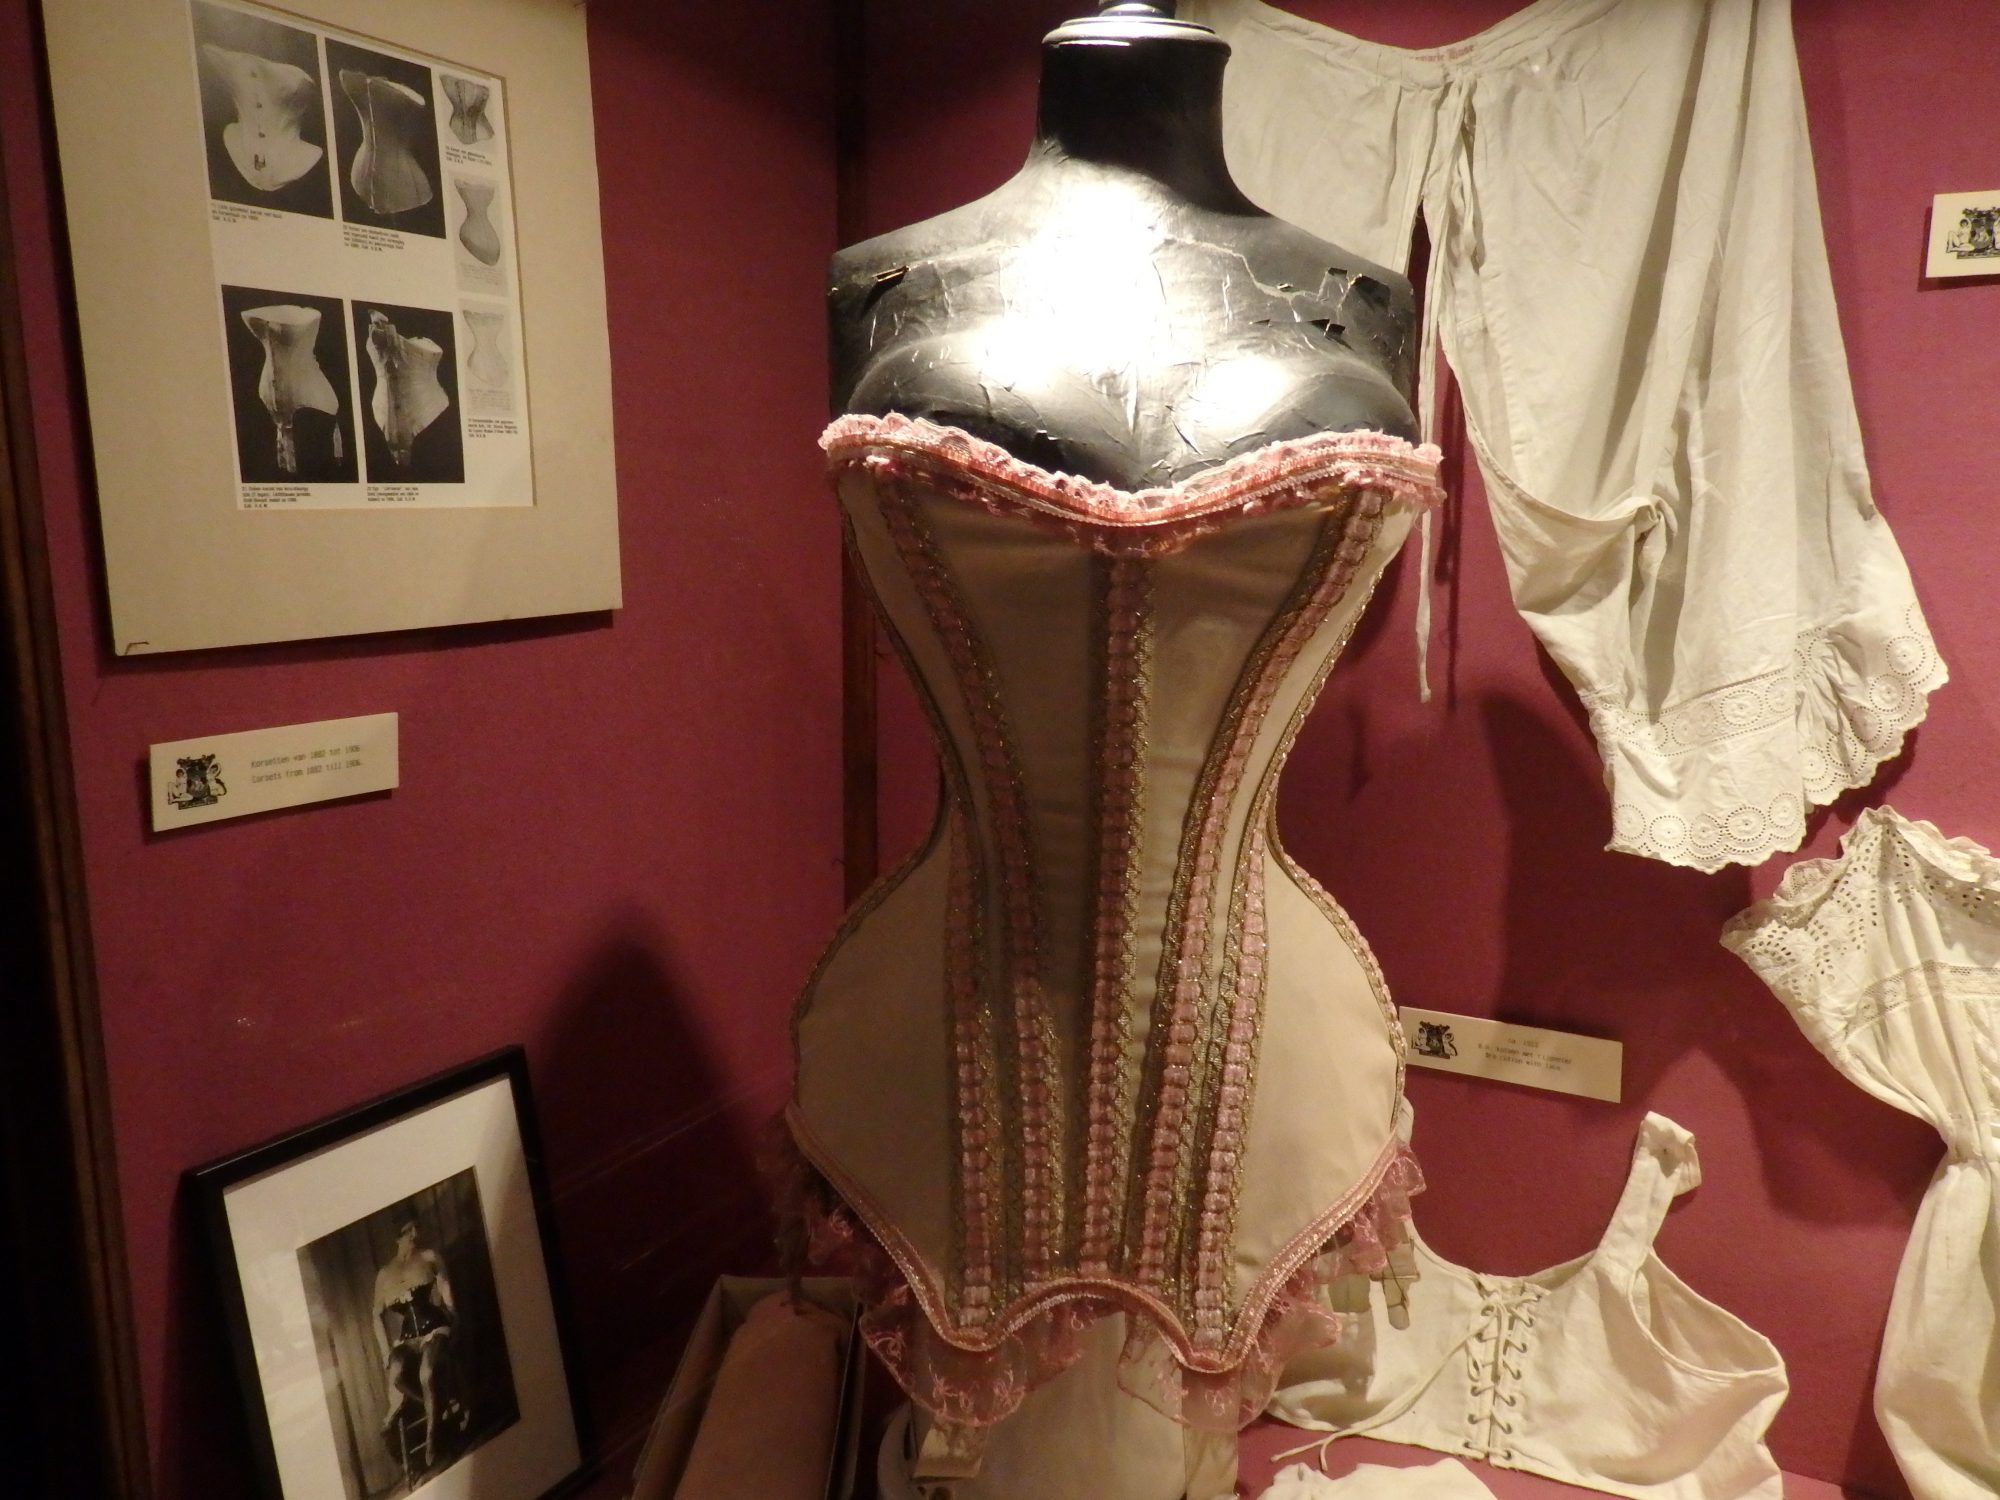 a corset on display in the Sex Museum in Amsterdam